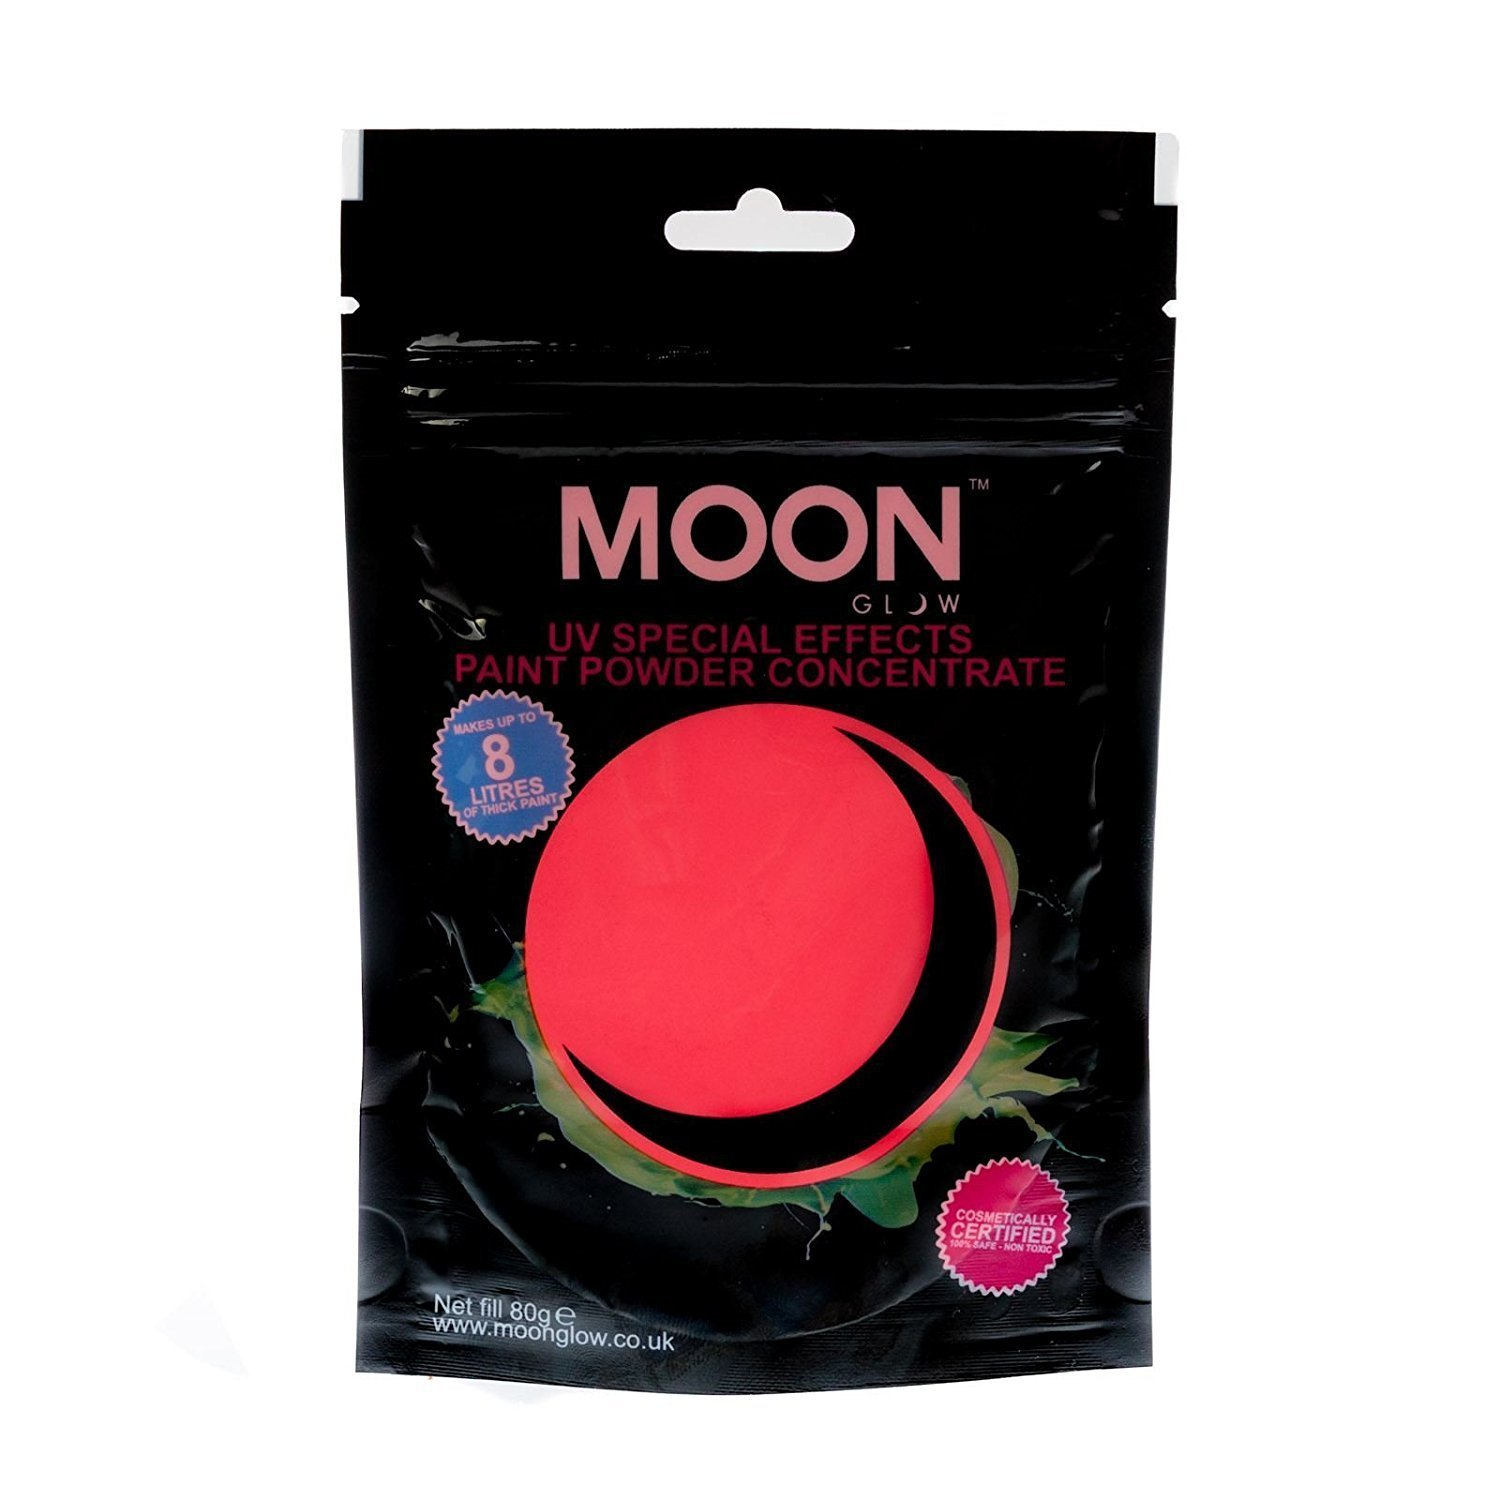 Moon Glow - 2.8oz Blacklight Paint Powder Red - Neon Special Effects Paint Party Powder Concentrate - Makes up to 2.1 US Gal!